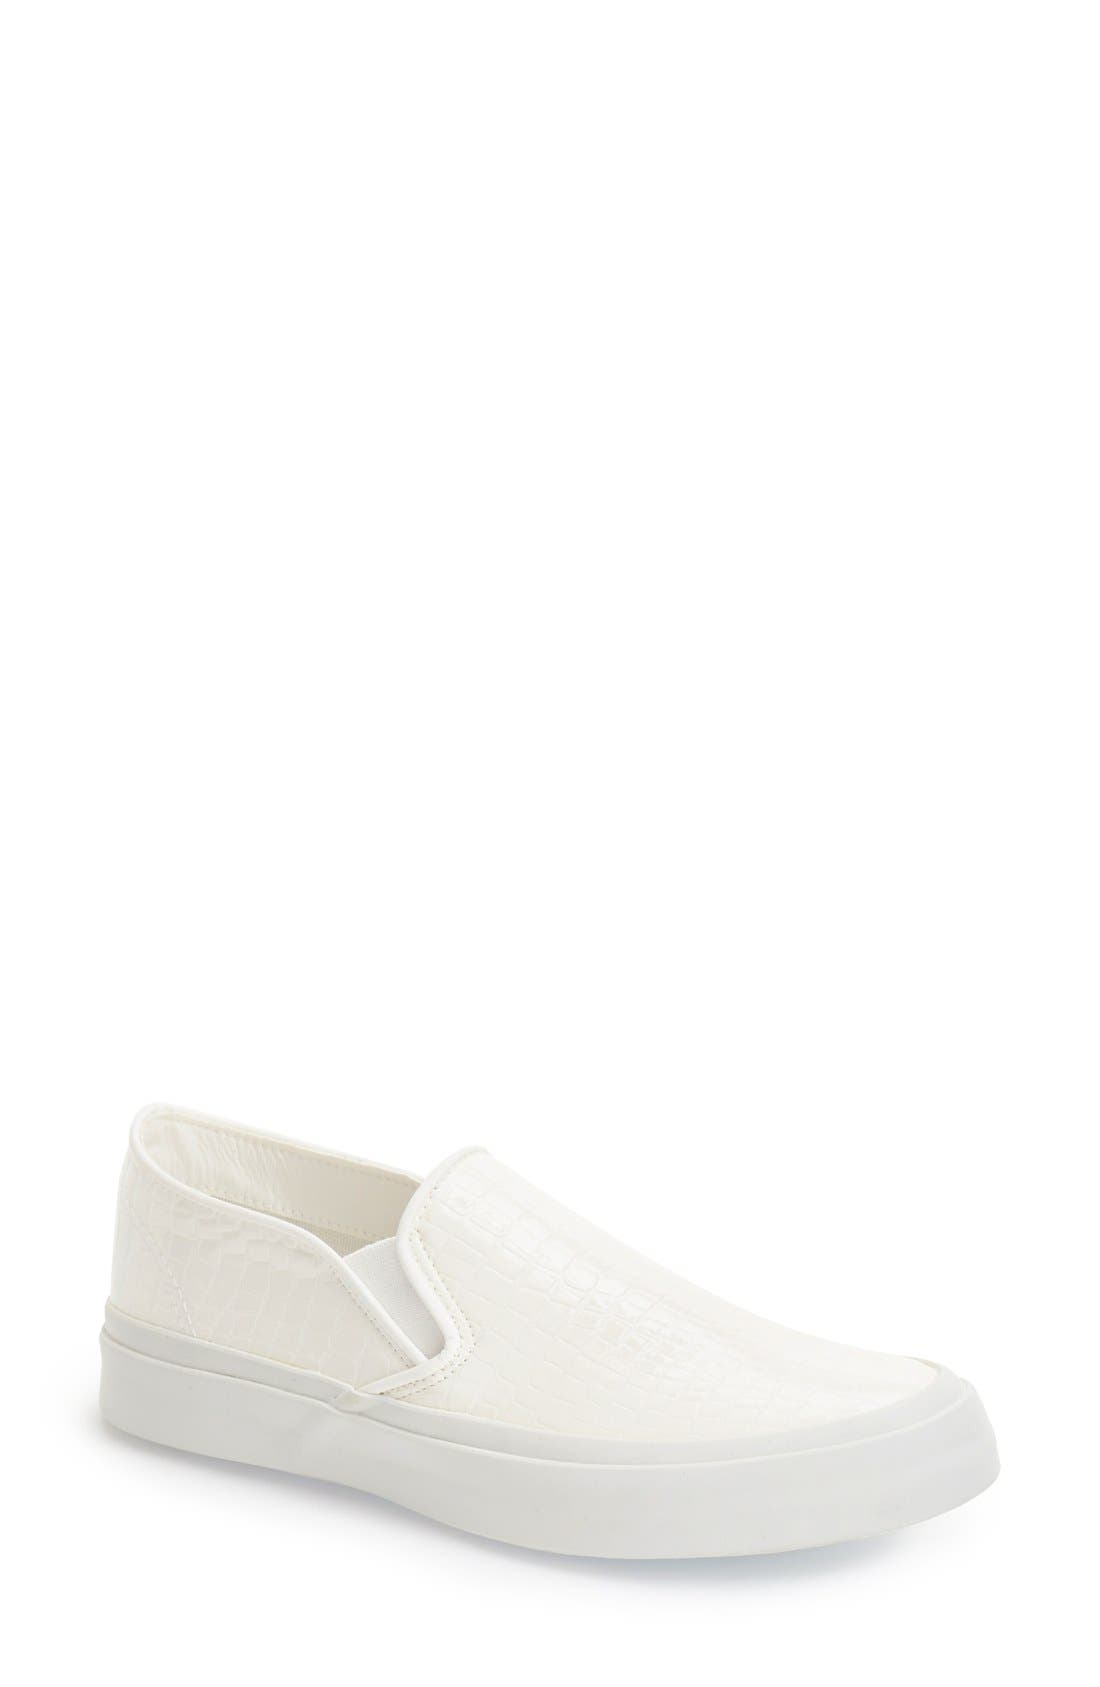 Slip-On Sneaker,                             Main thumbnail 1, color,                             White